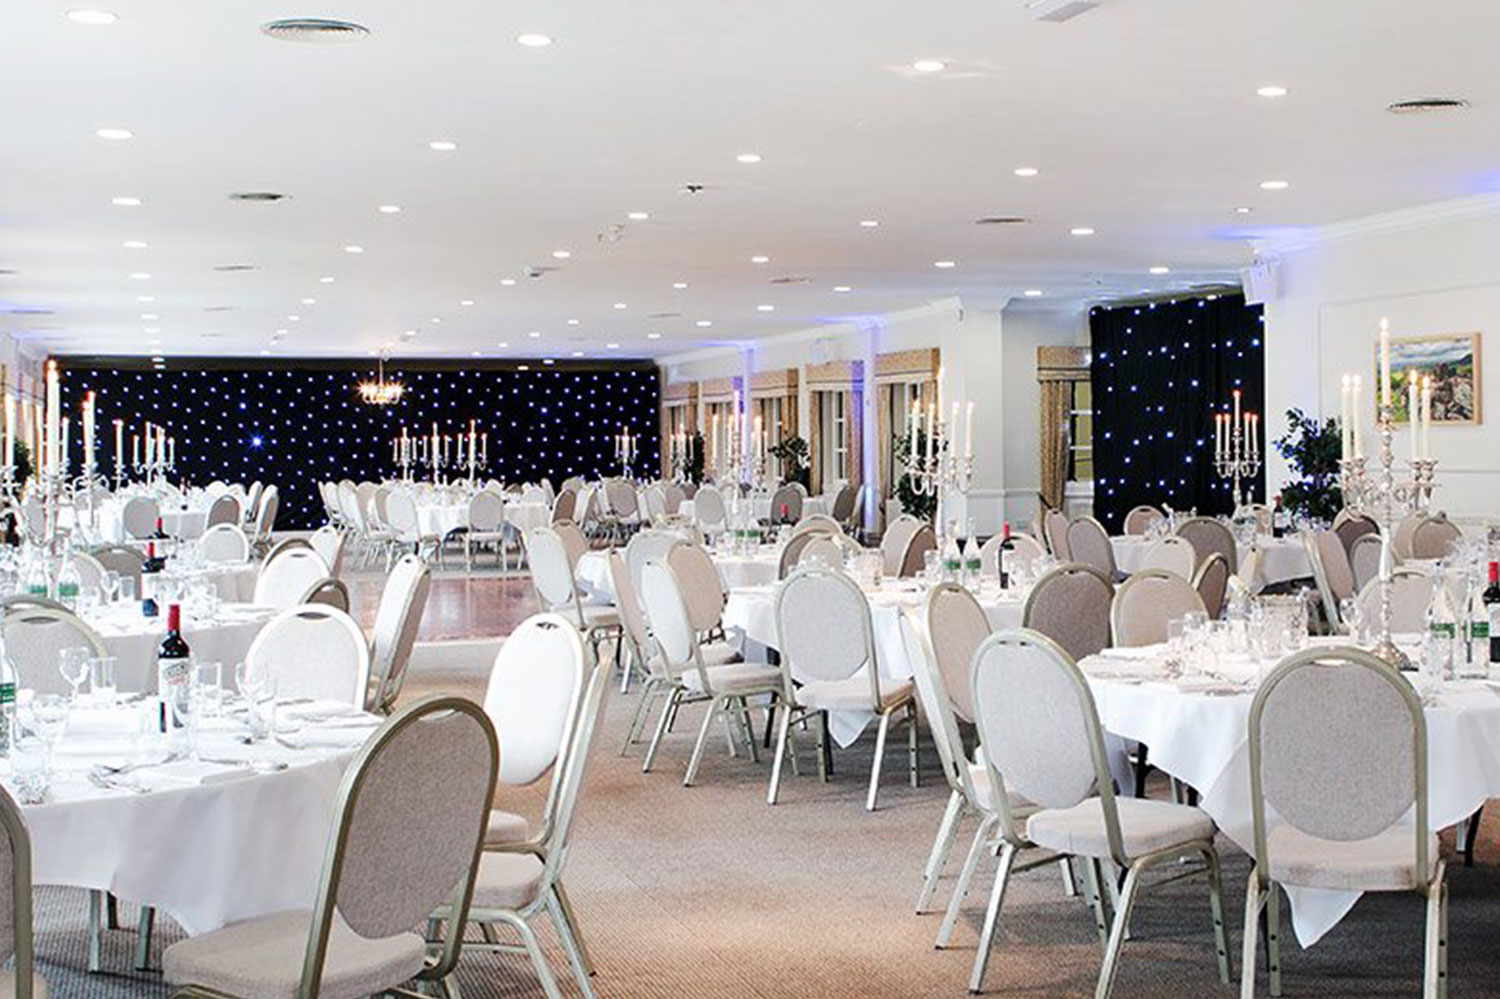 Wharfe room Pavilions of Harrogate